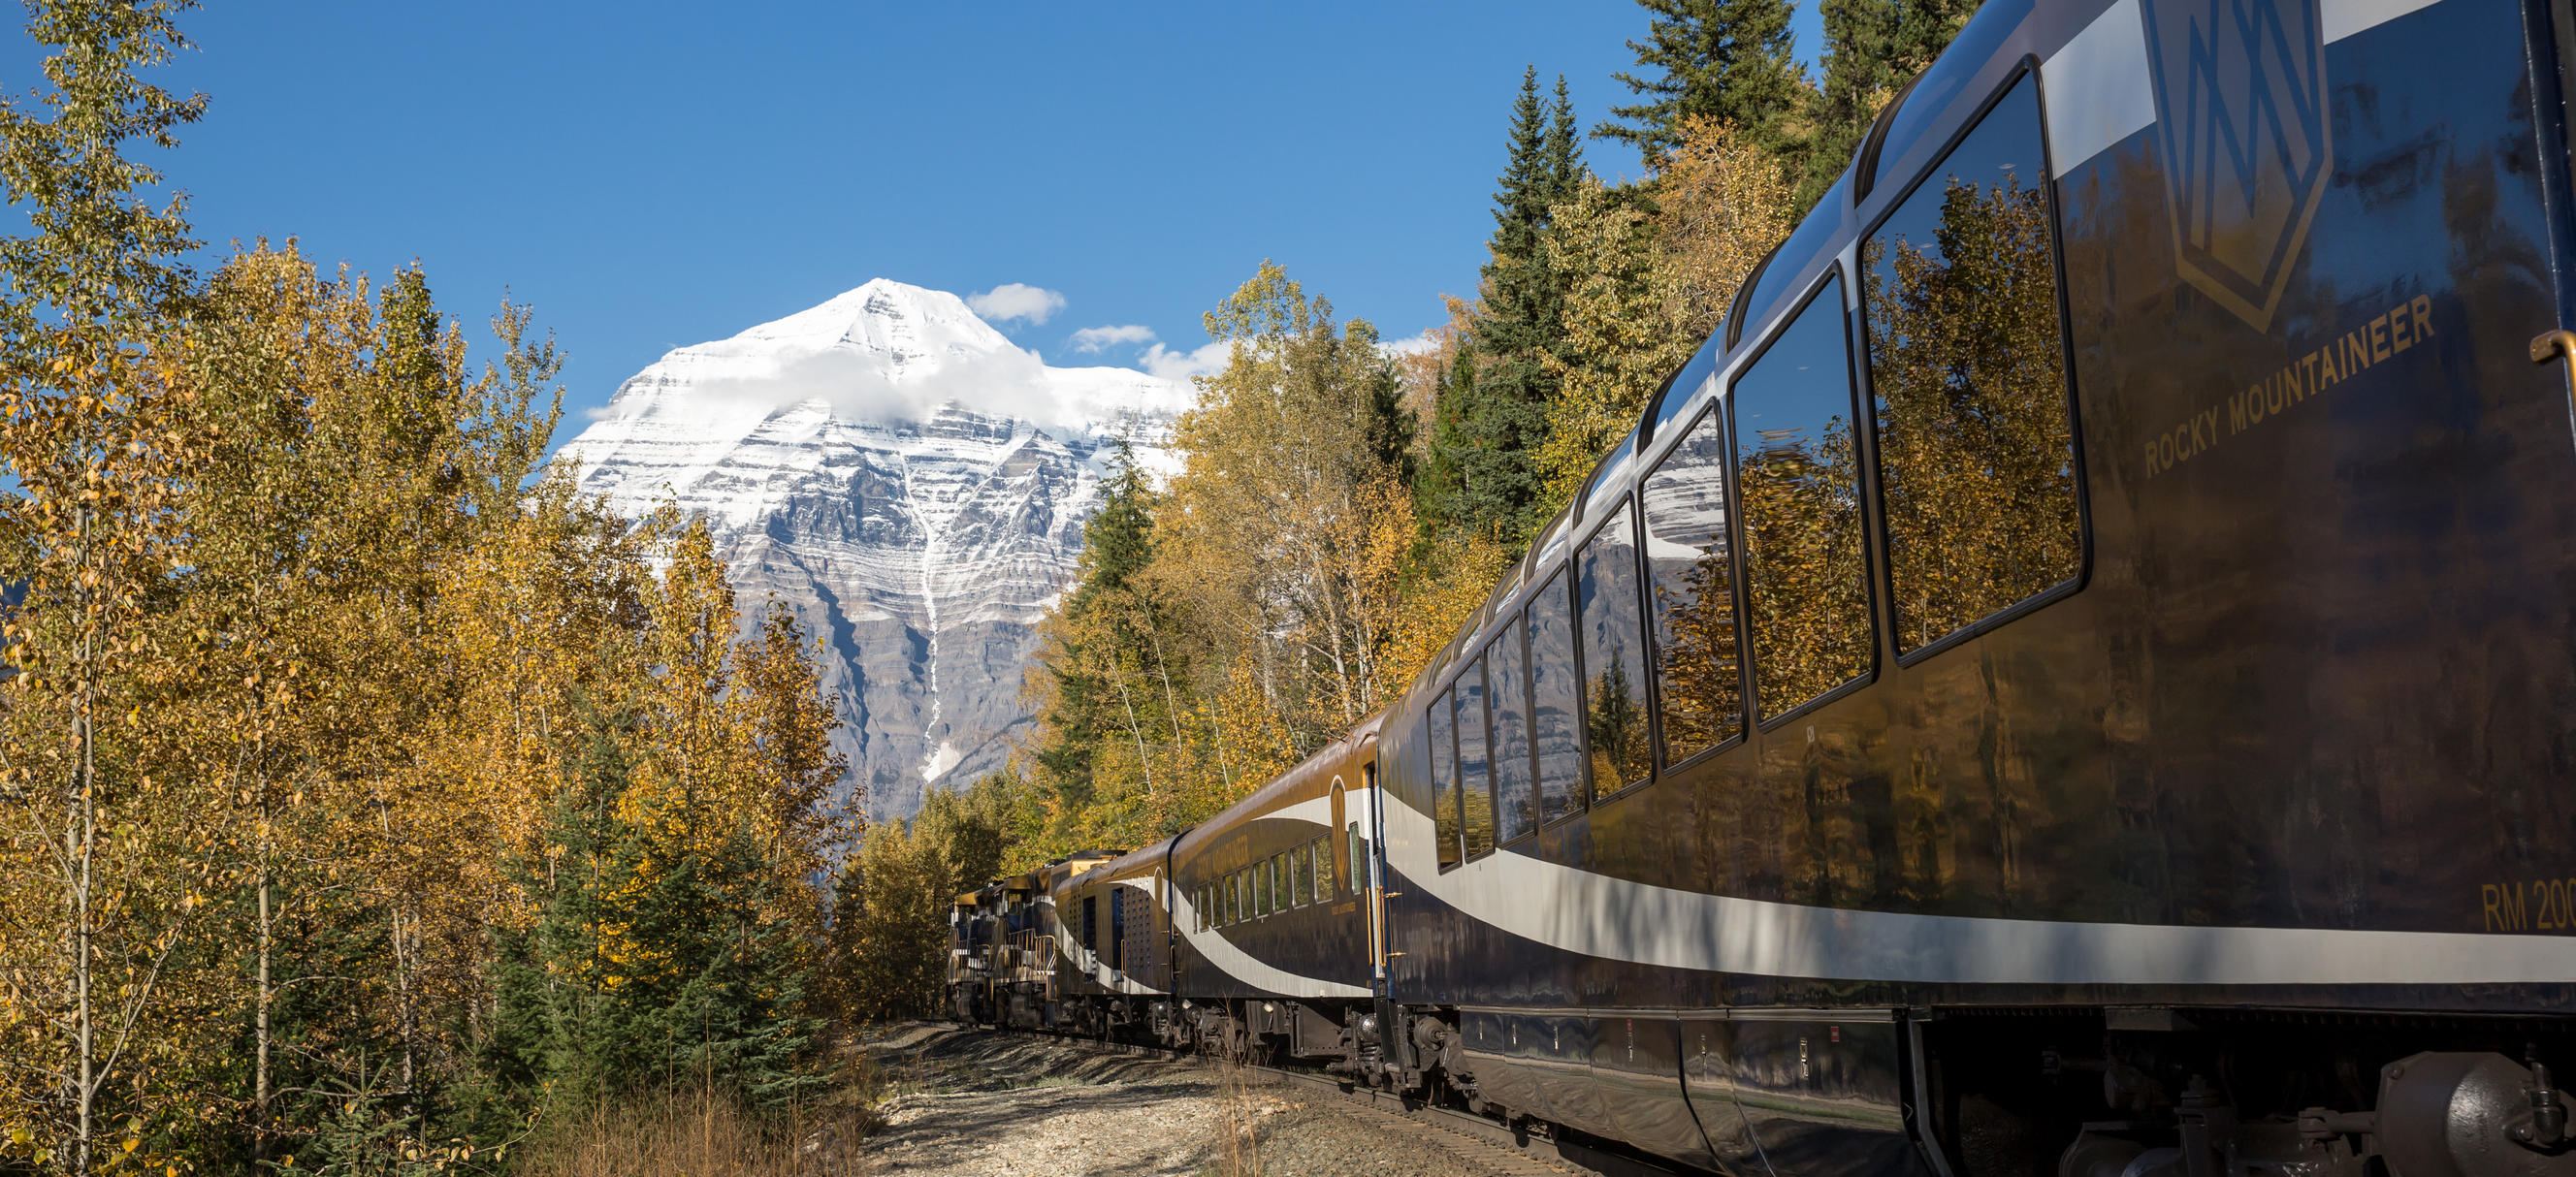 Journey Through The Clouds - Mount Robson | Rocky Mountaineer